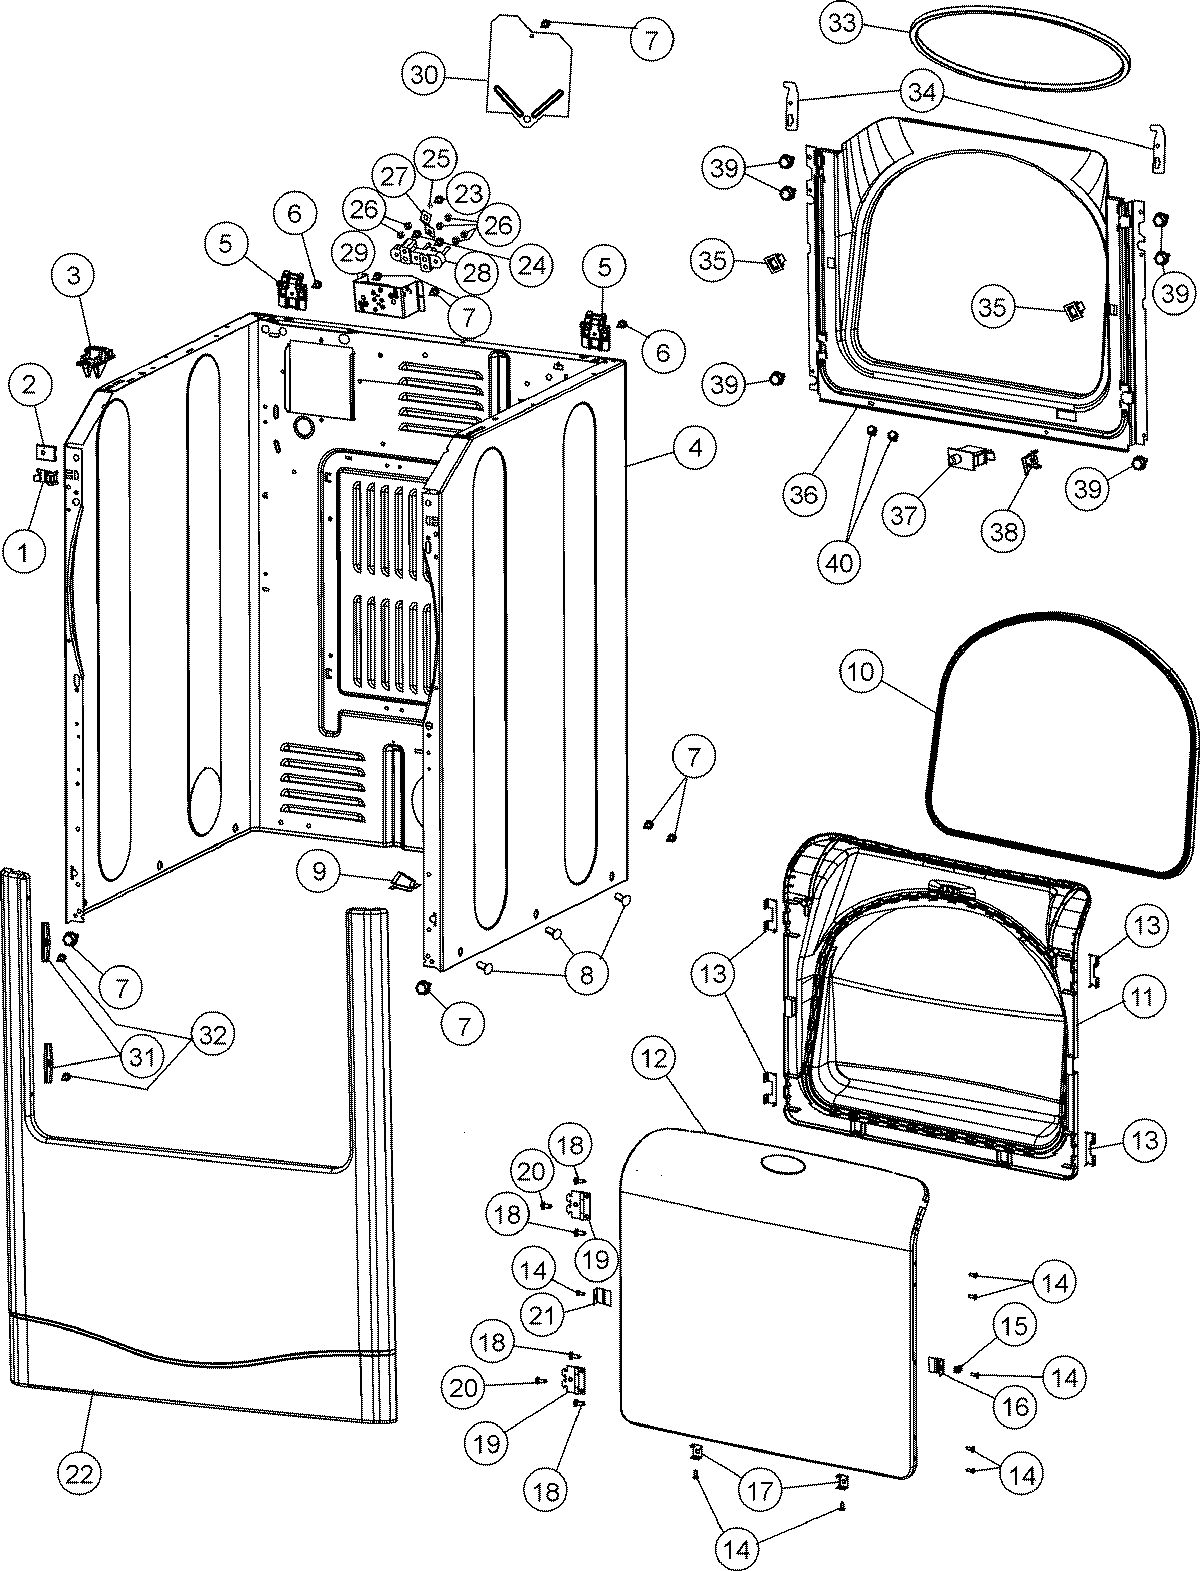 hight resolution of photos of parts for a maytag dryer